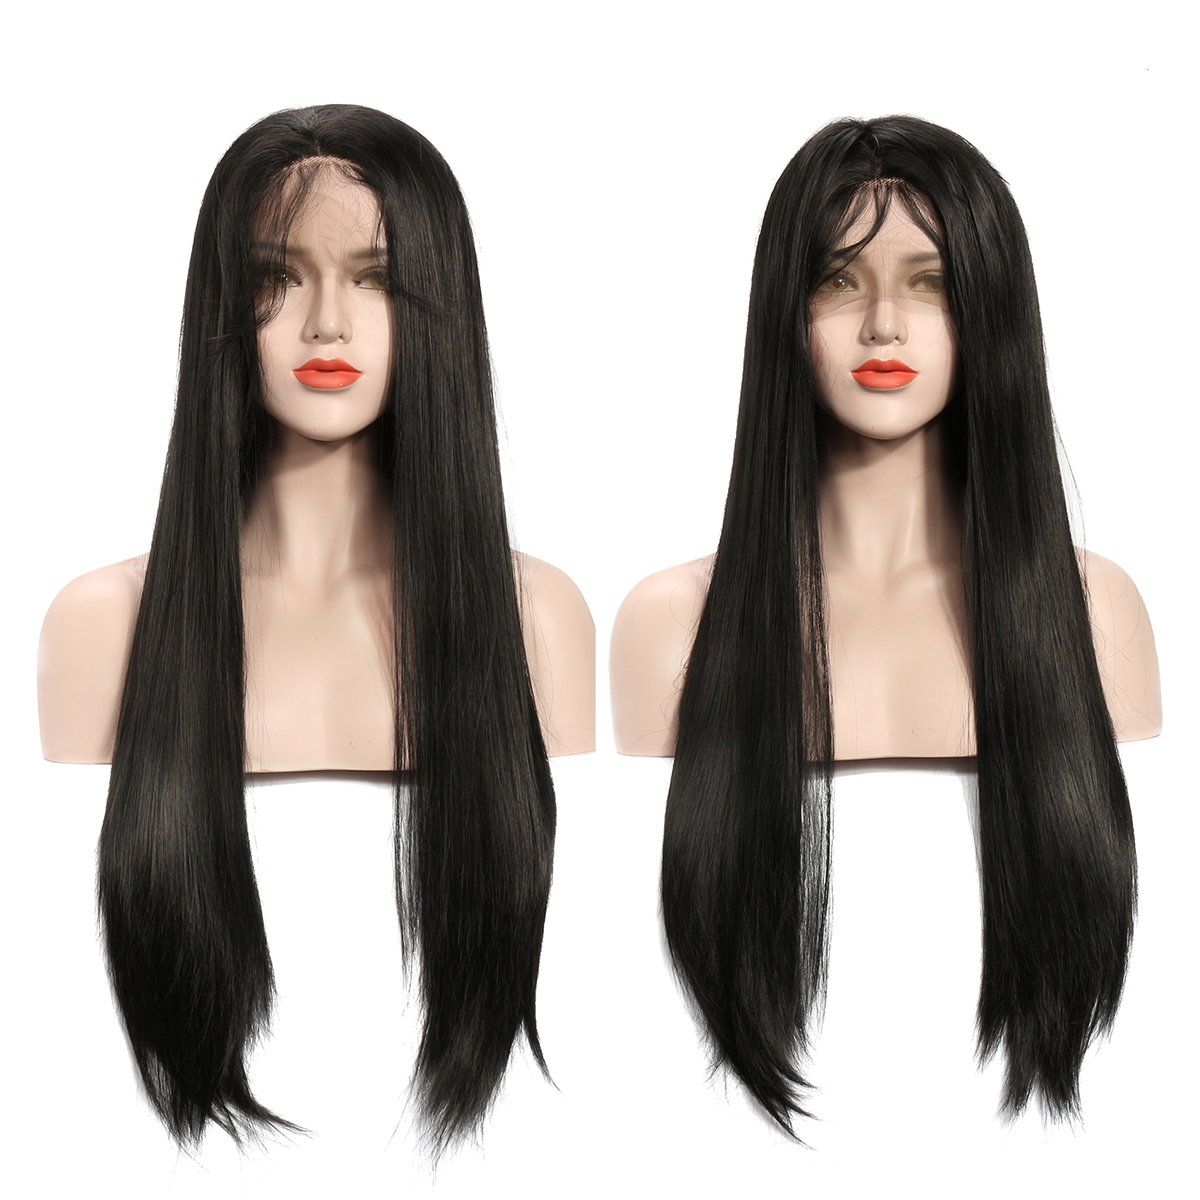 22/24 Inch Black Hair Wigs For Women Long Straight Lace